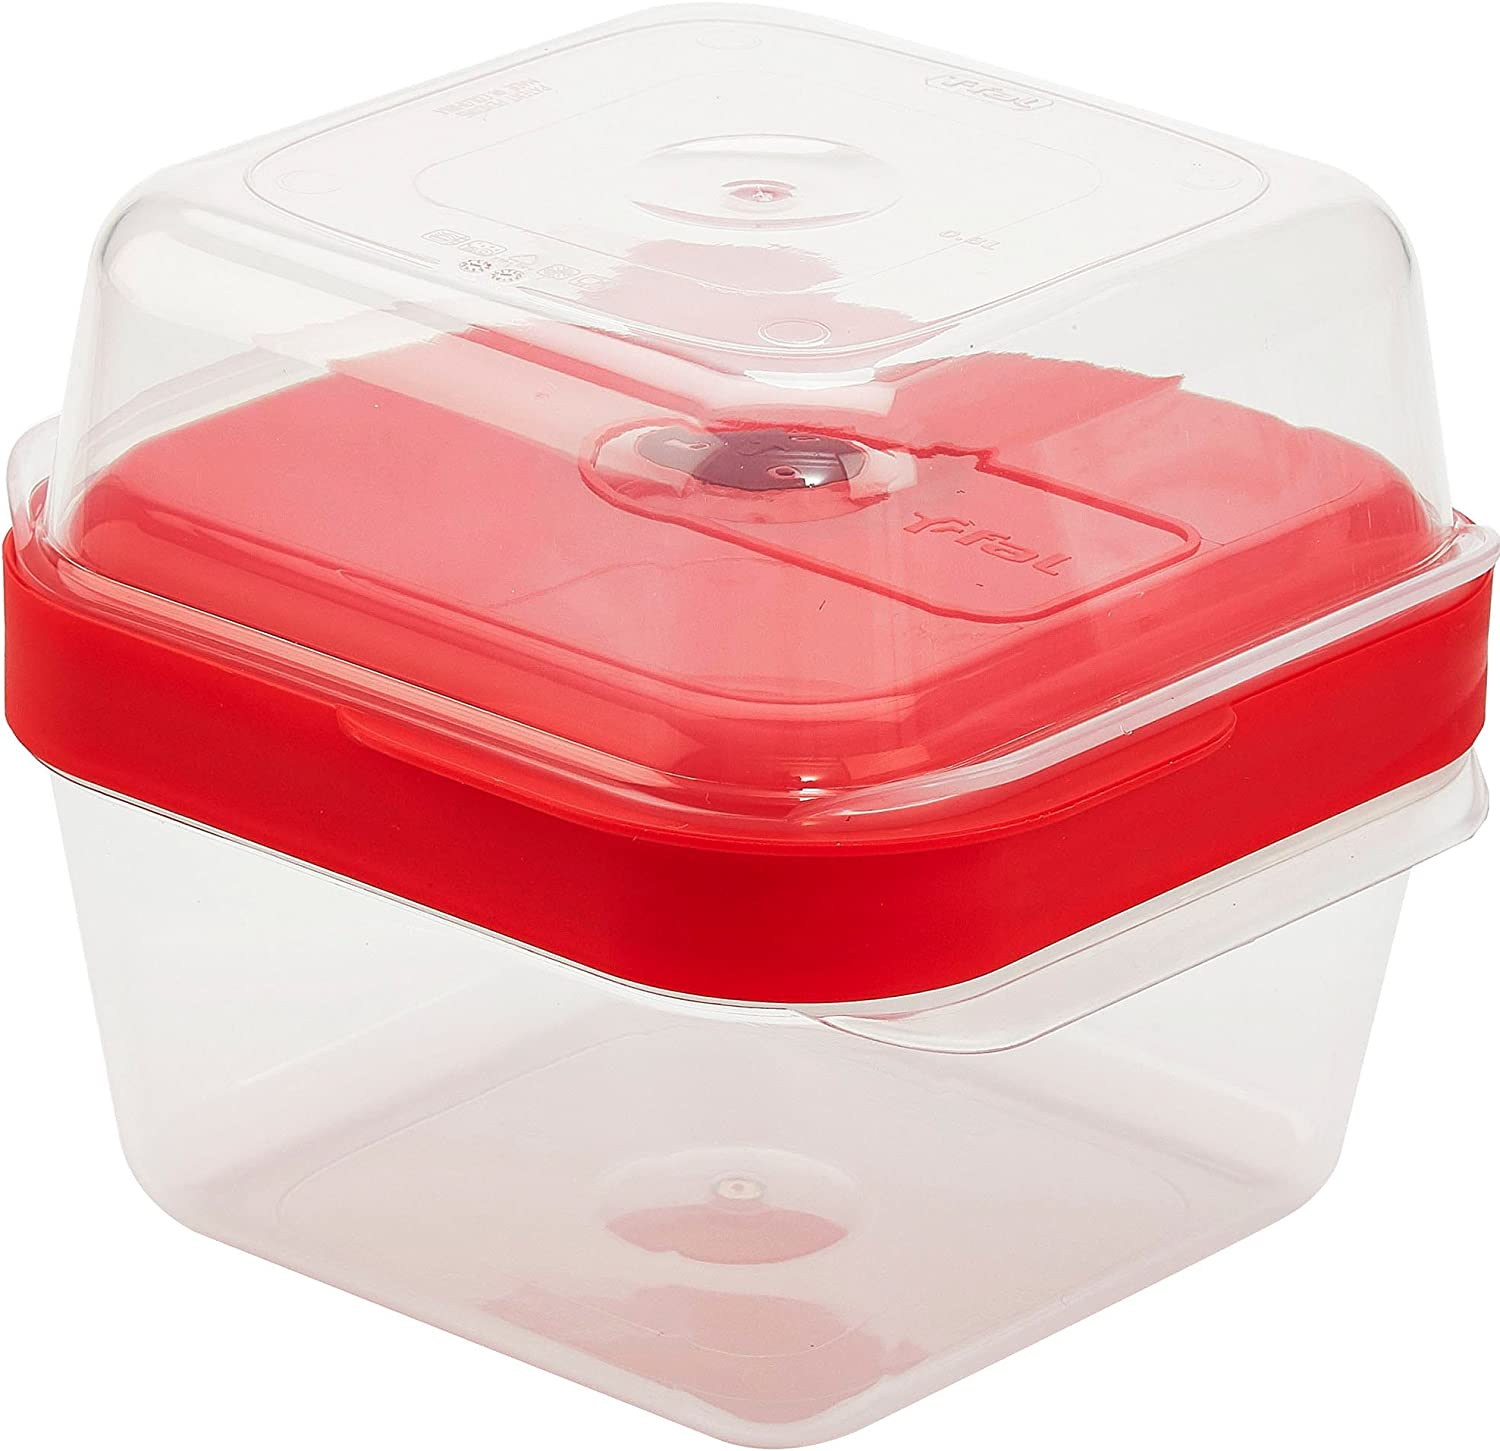 T-fal Thermoseal Lunch Combo, Red